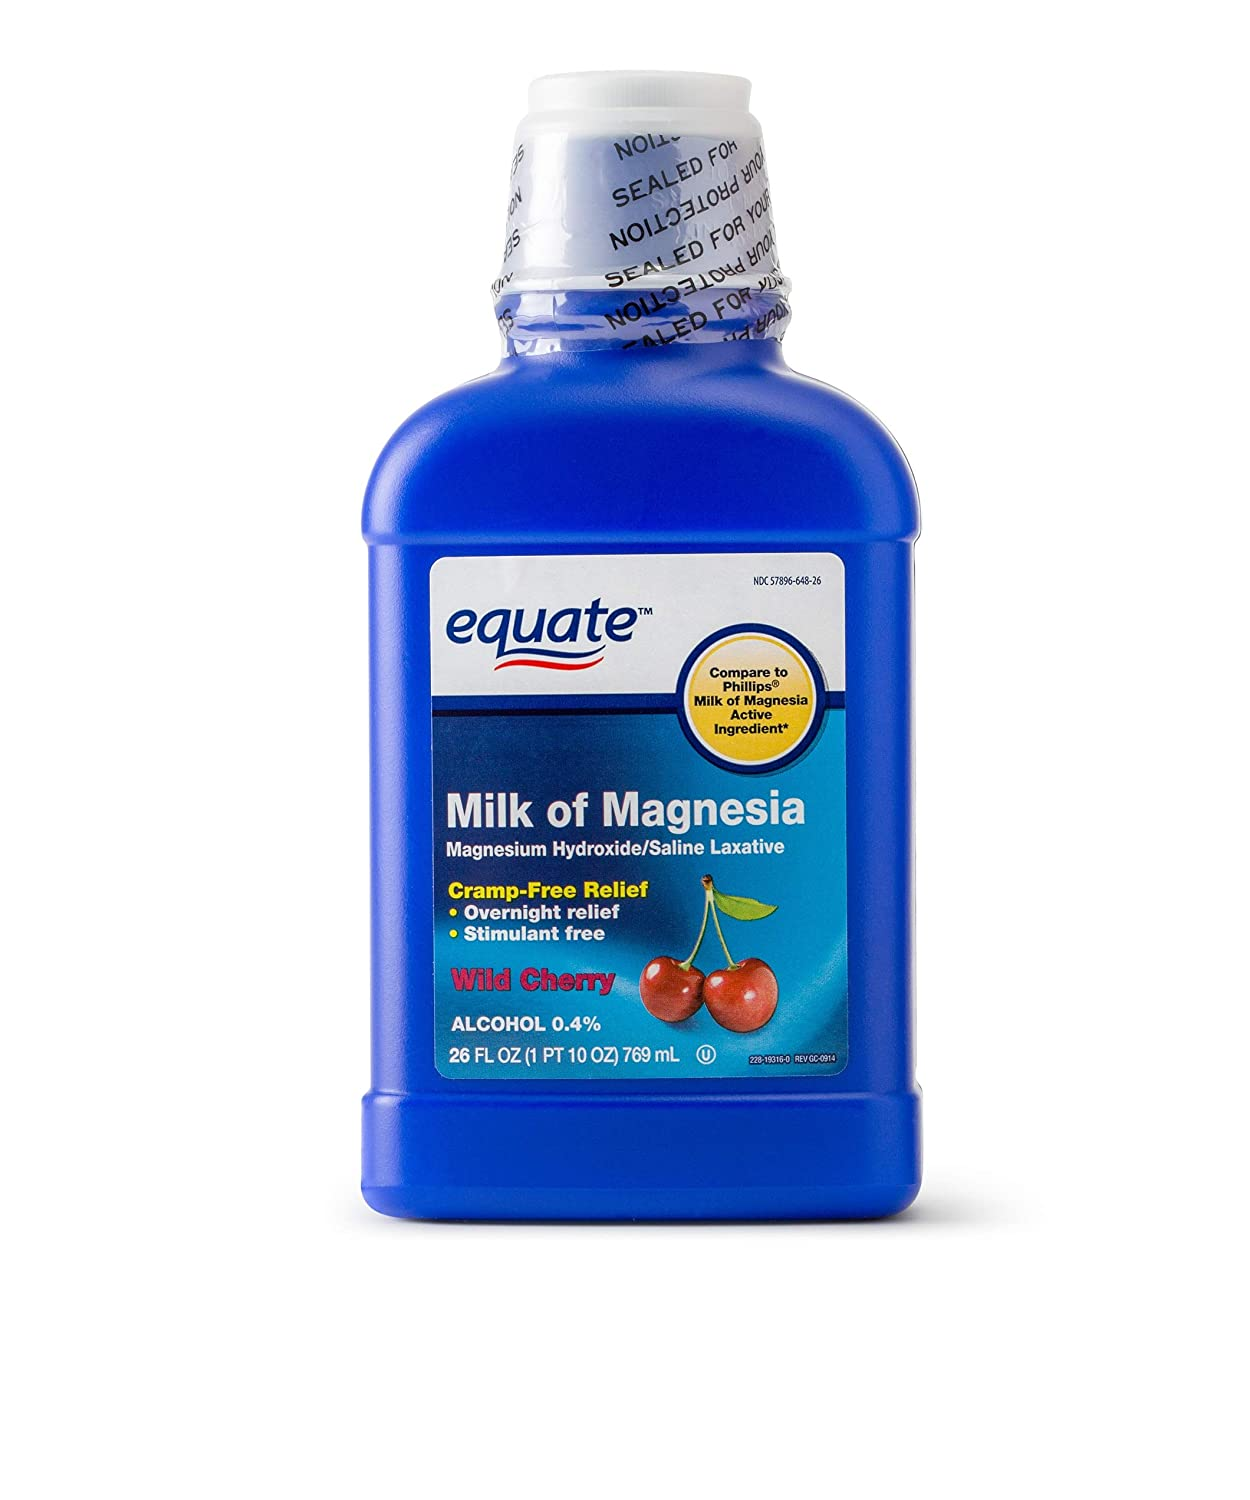 Amazon.com: Equate Milk of Magnesia Saline Laxative Wild Cherry Flavor, 1200 mg, 26 Oz (Pack of 2): Health & Personal Care